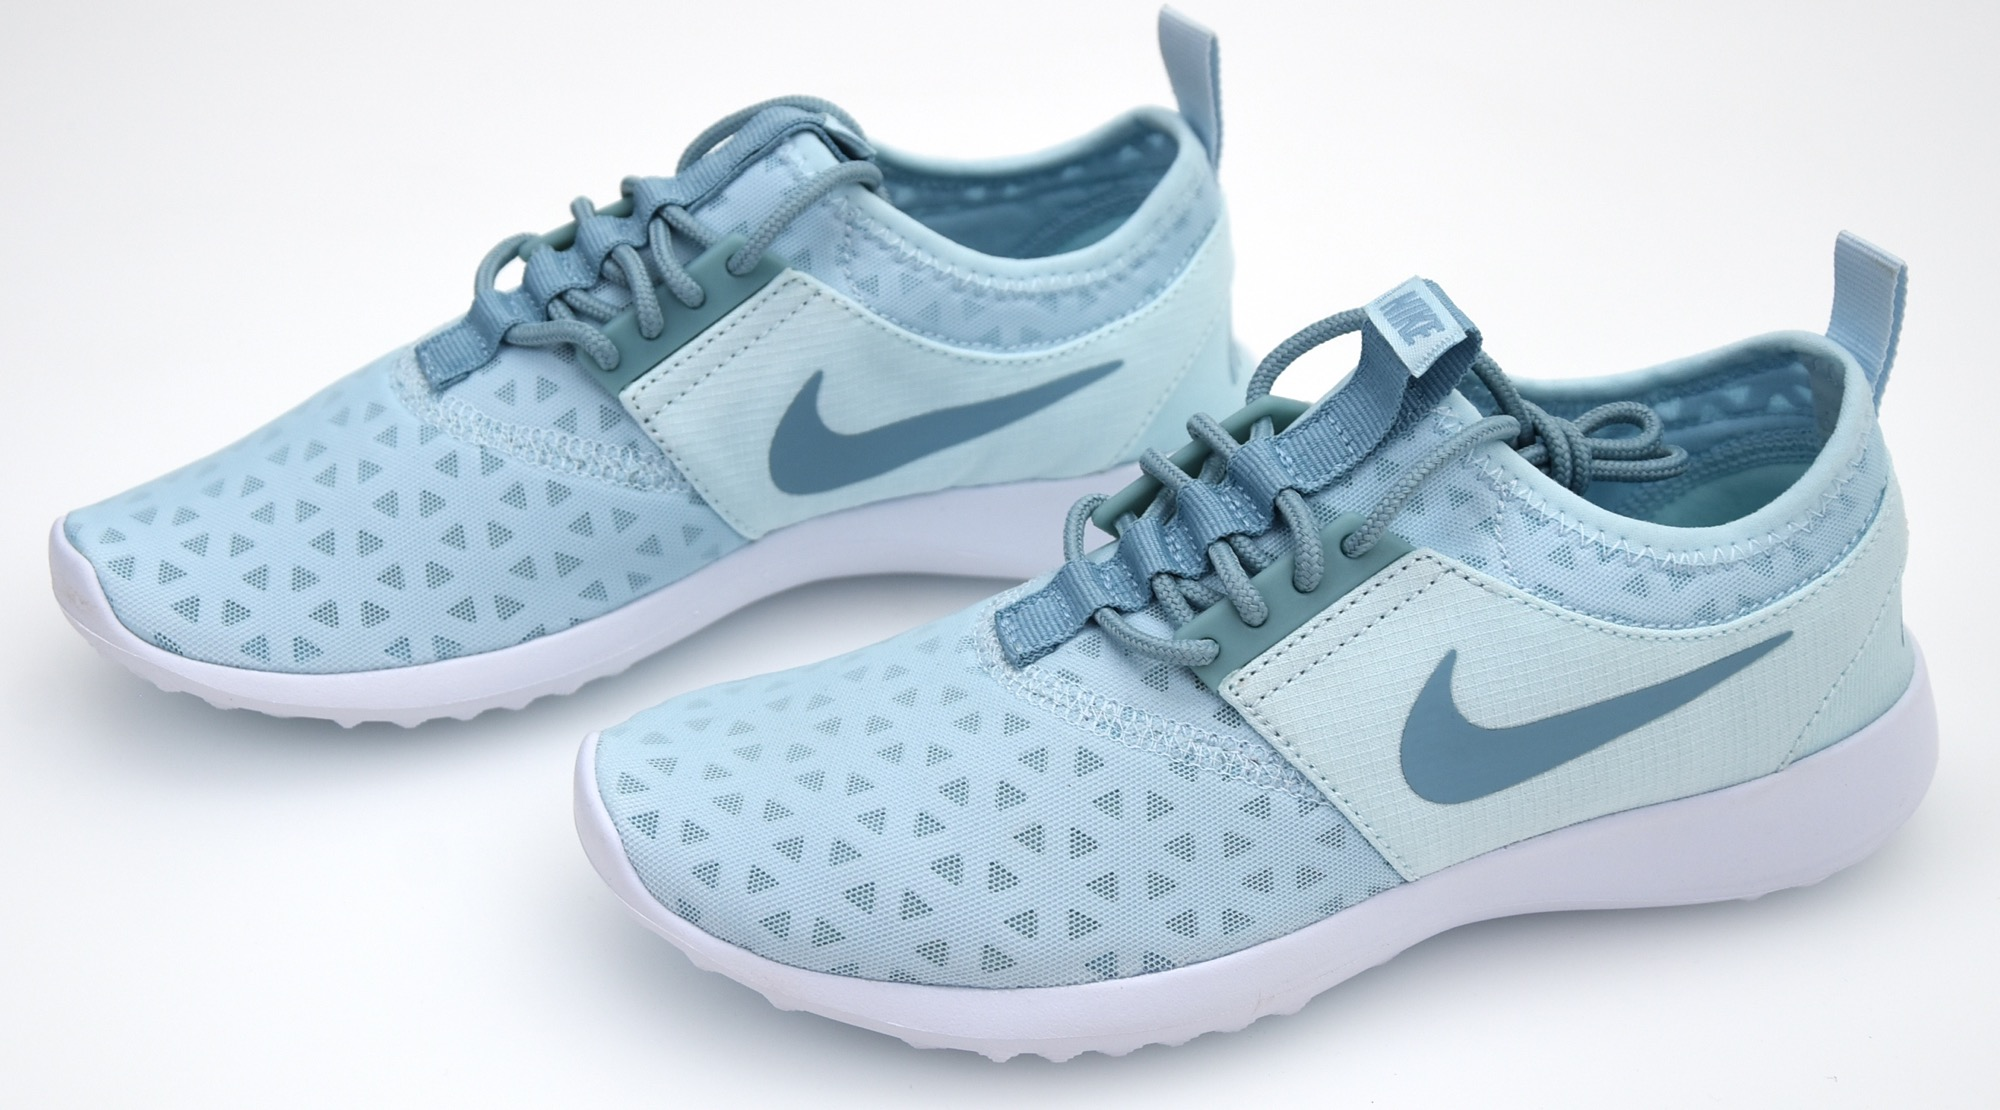 separation shoes c8a06 0e316 NIKE WOMAN SPORTS SNEAKER SHOES CASUAL FREE TIME CODE 724979 WMNS NIKE  JUVENATE